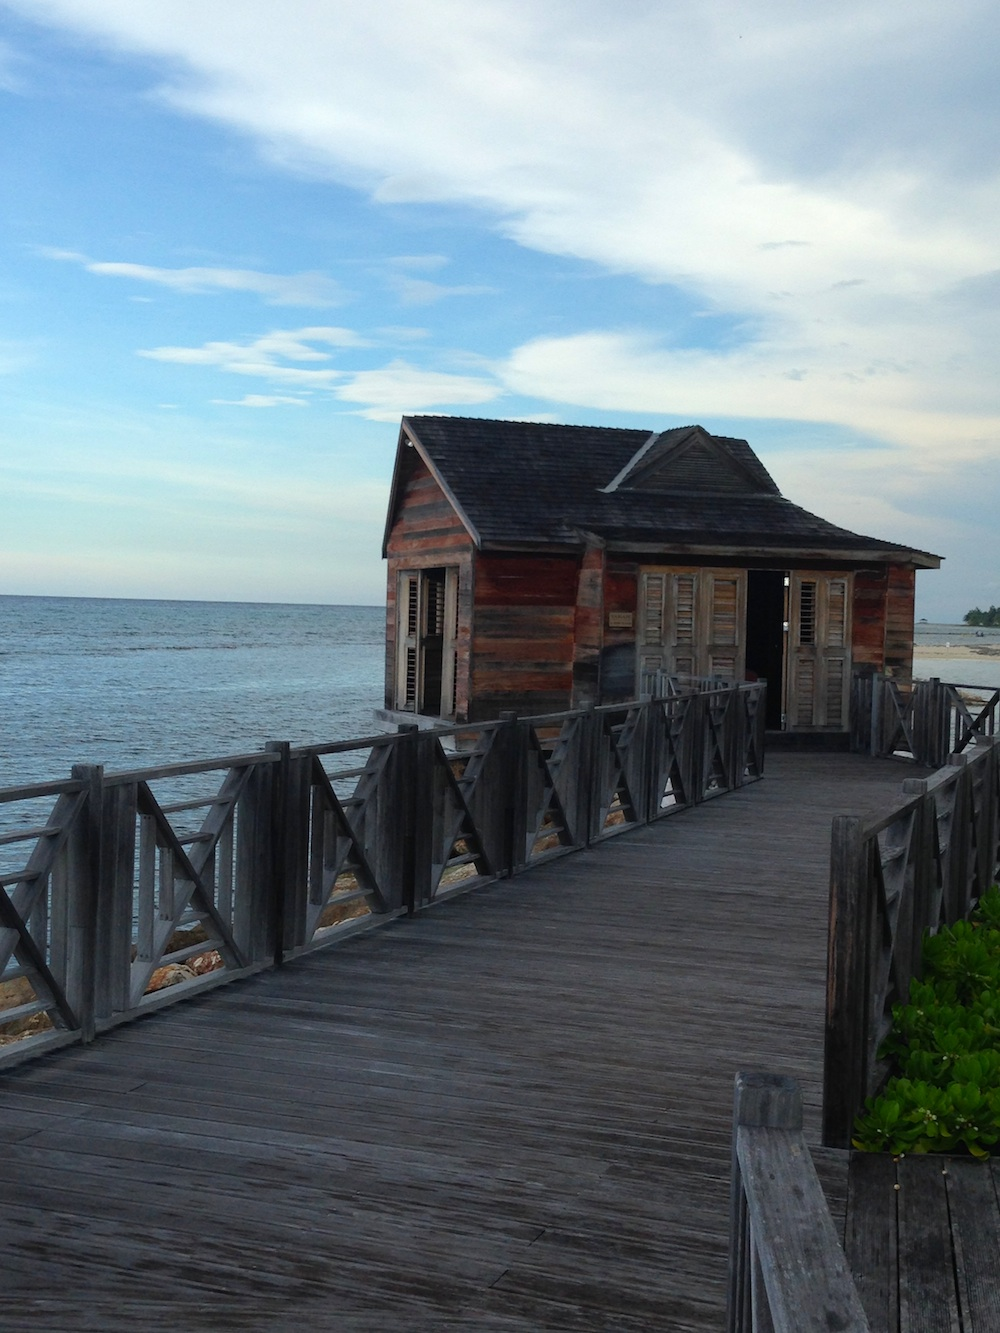 These Over-Water Cabins at Half Moon Jamaica are amazing and they can be requested for spa services and even a candle-lit dinner / see more at www.BrendasWeddingBlog.com